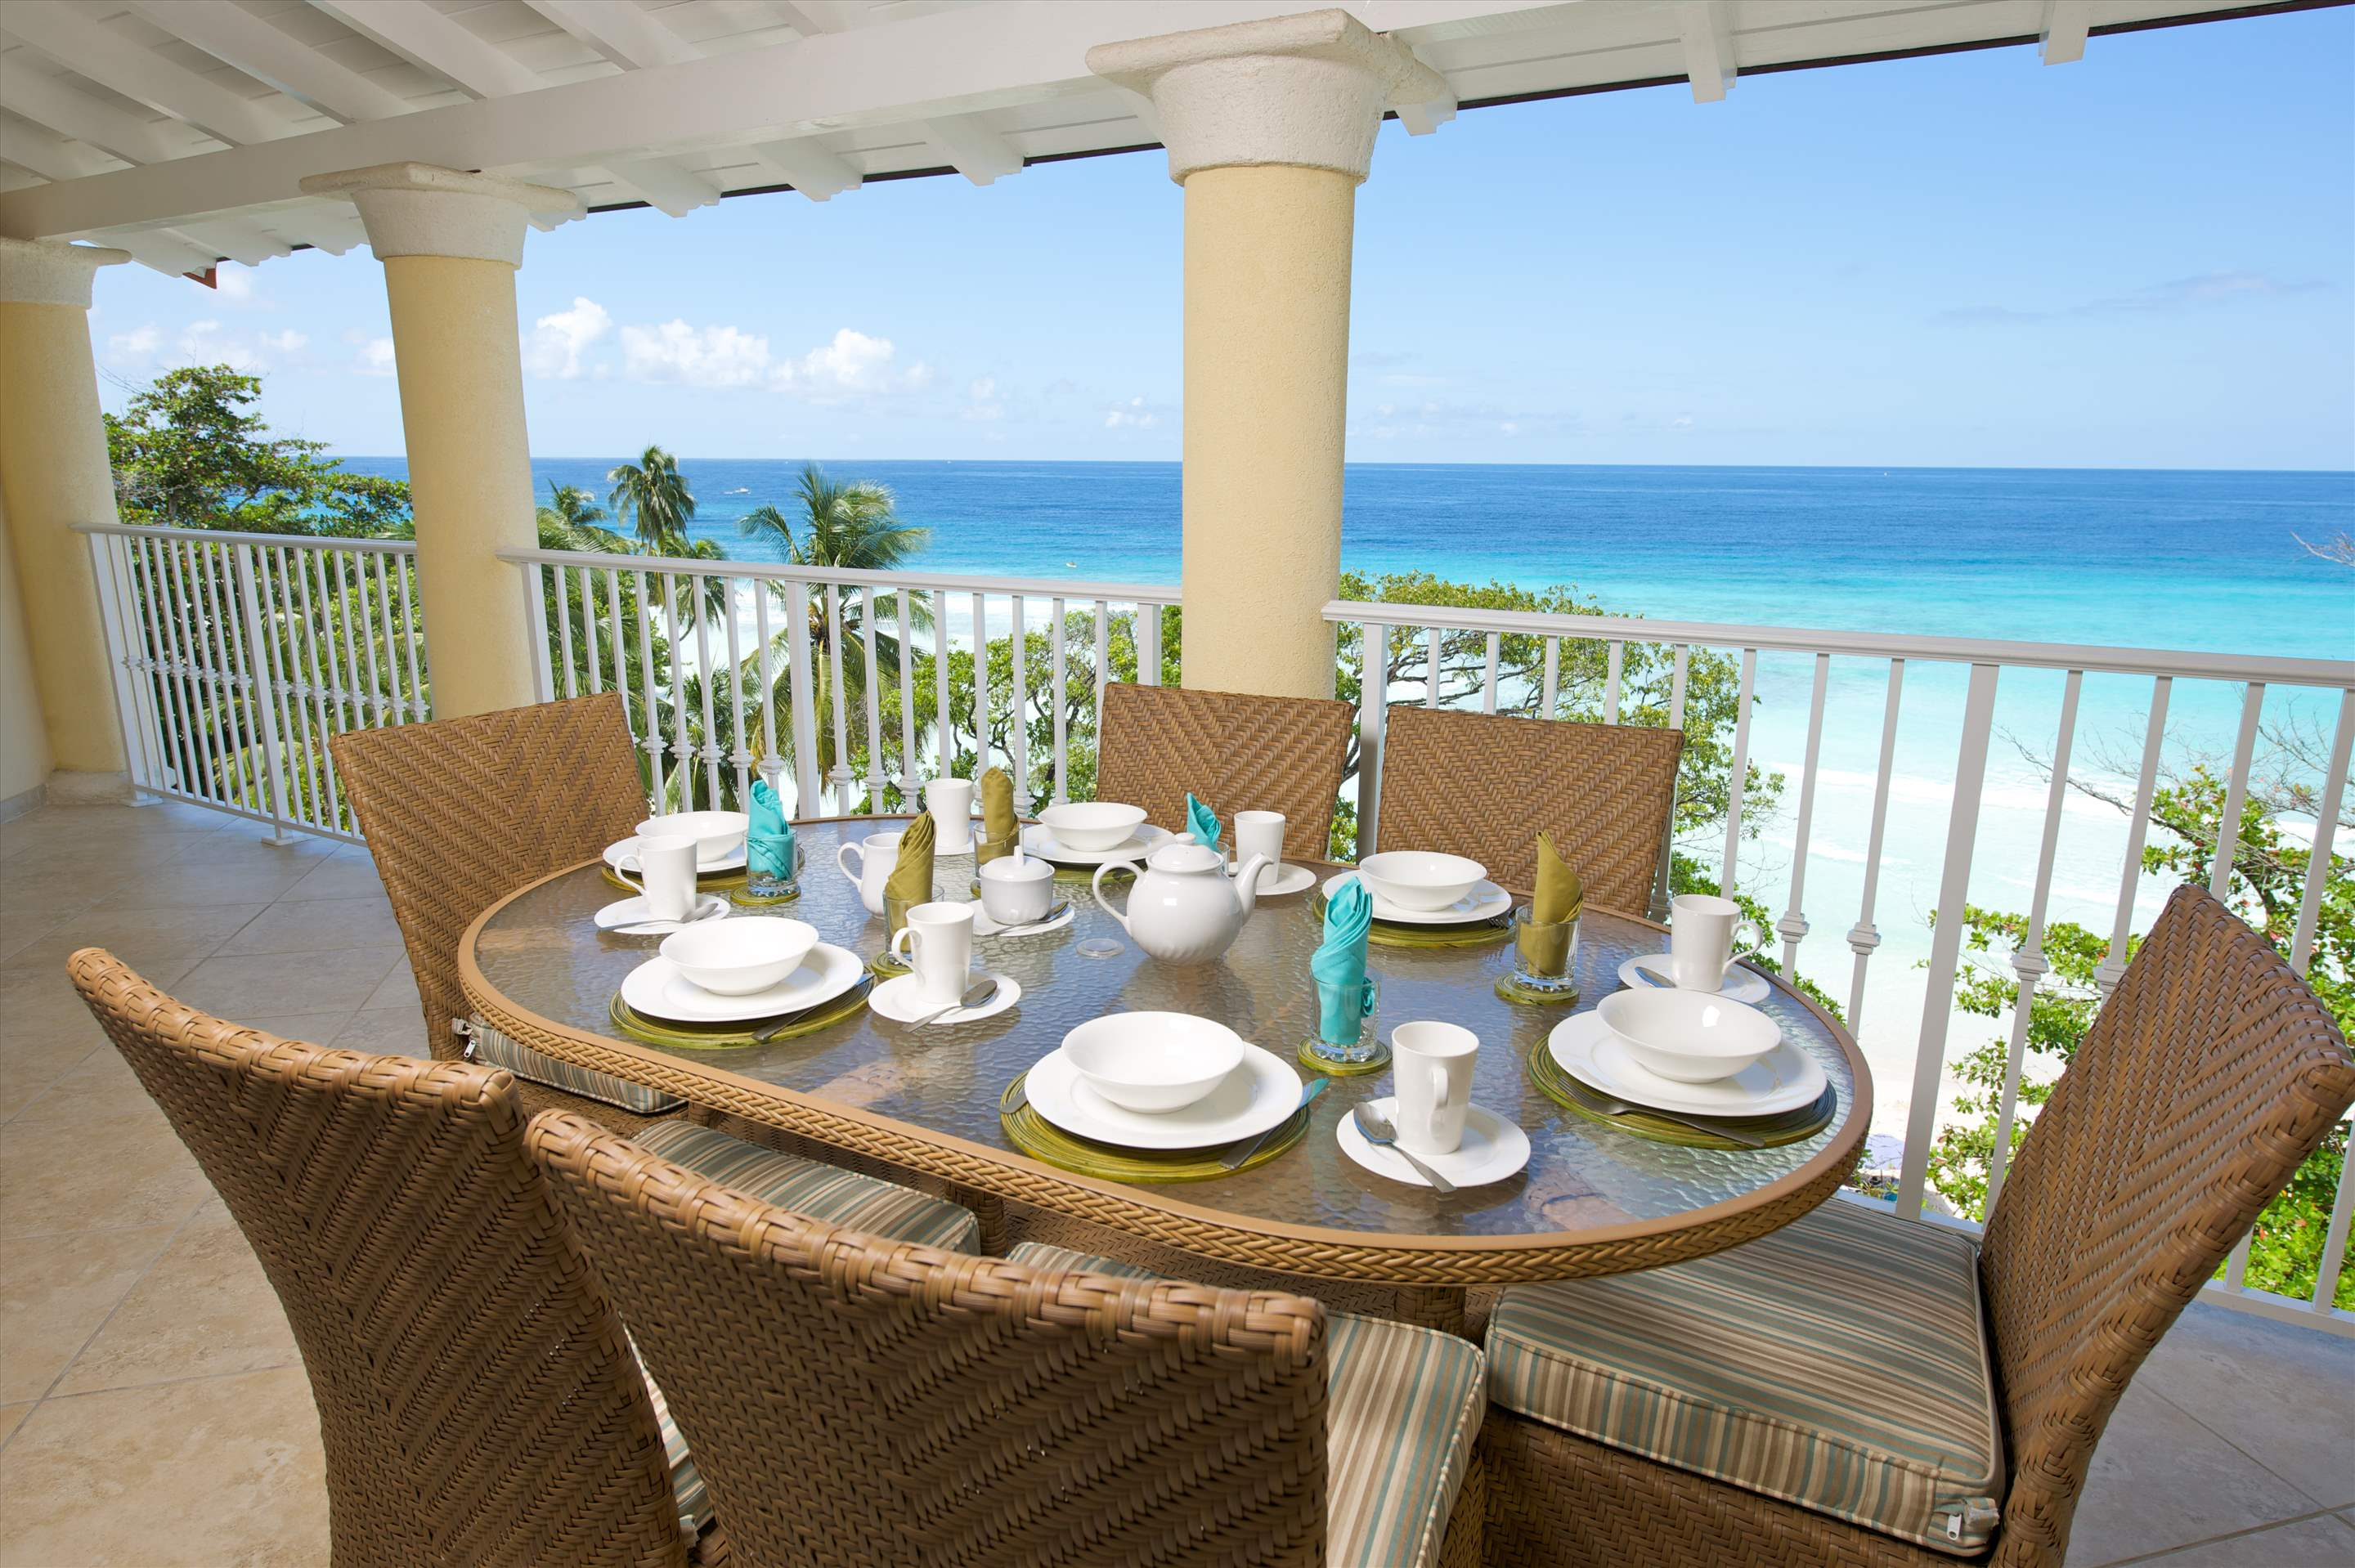 Sapphire Beach 509, 2 bedroom, 3 bedroom apartment in St. Lawrence Gap & South Coast, Barbados Photo #3